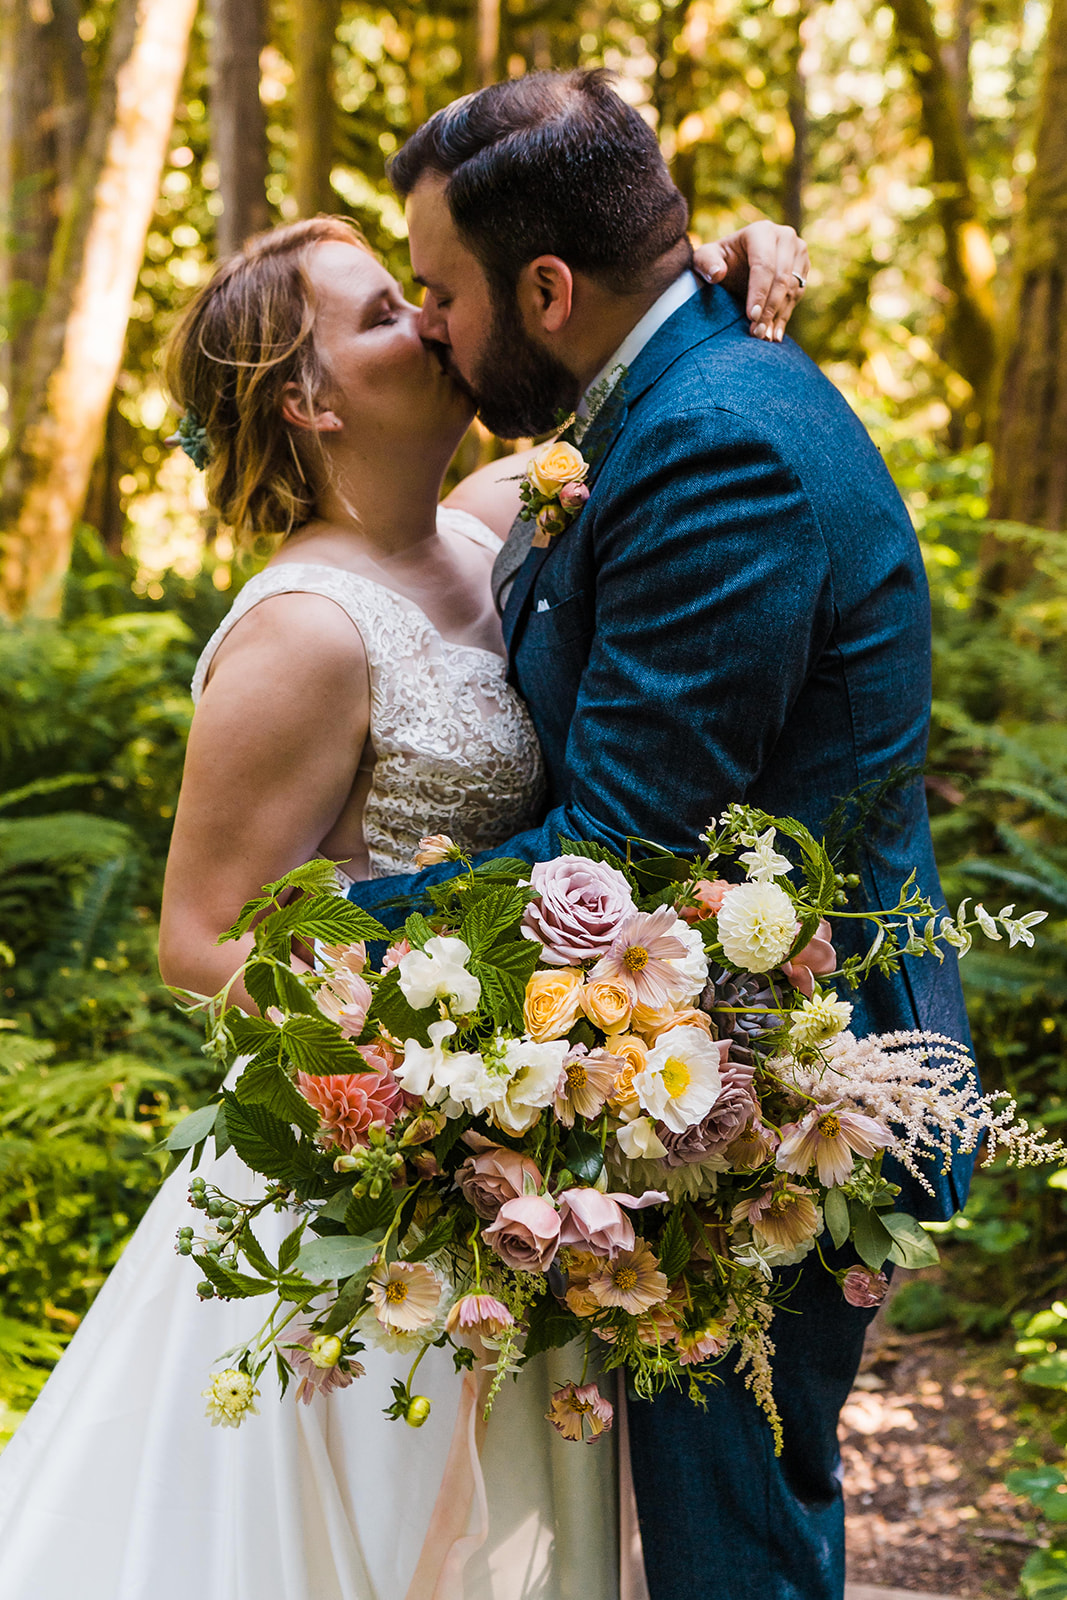 elopement bouquet seattle elopement seattle elopements small wedding seattle small wedding small weddings seattle small weddings covid wedding covid weddings seattle